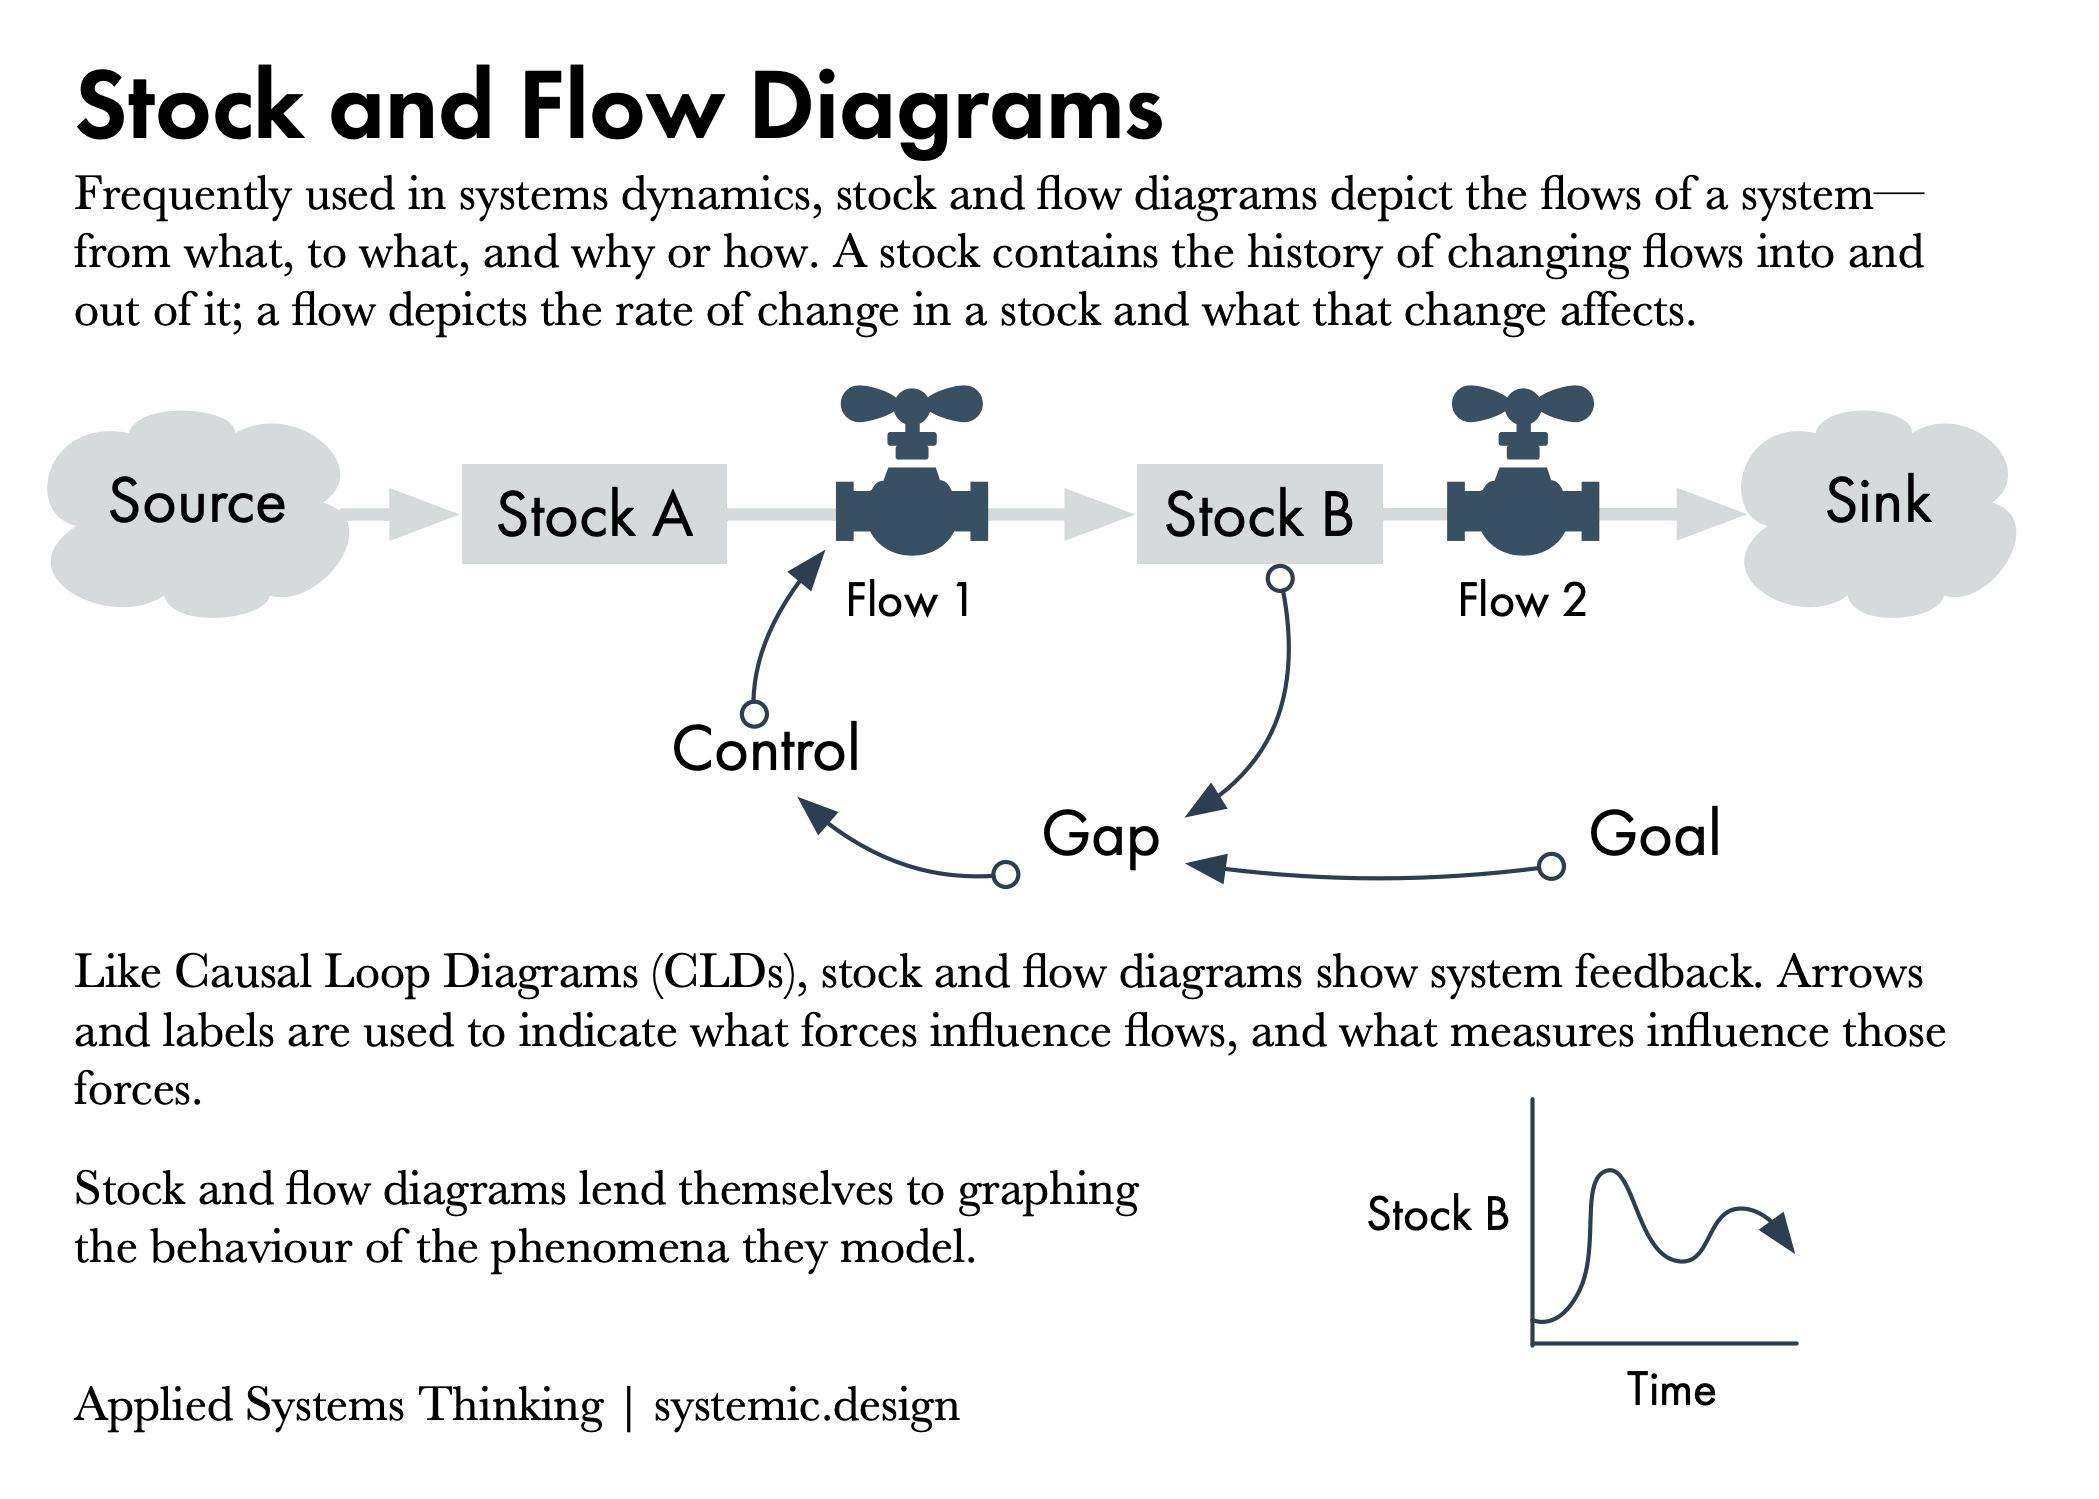 Stock and Flow Diagrams